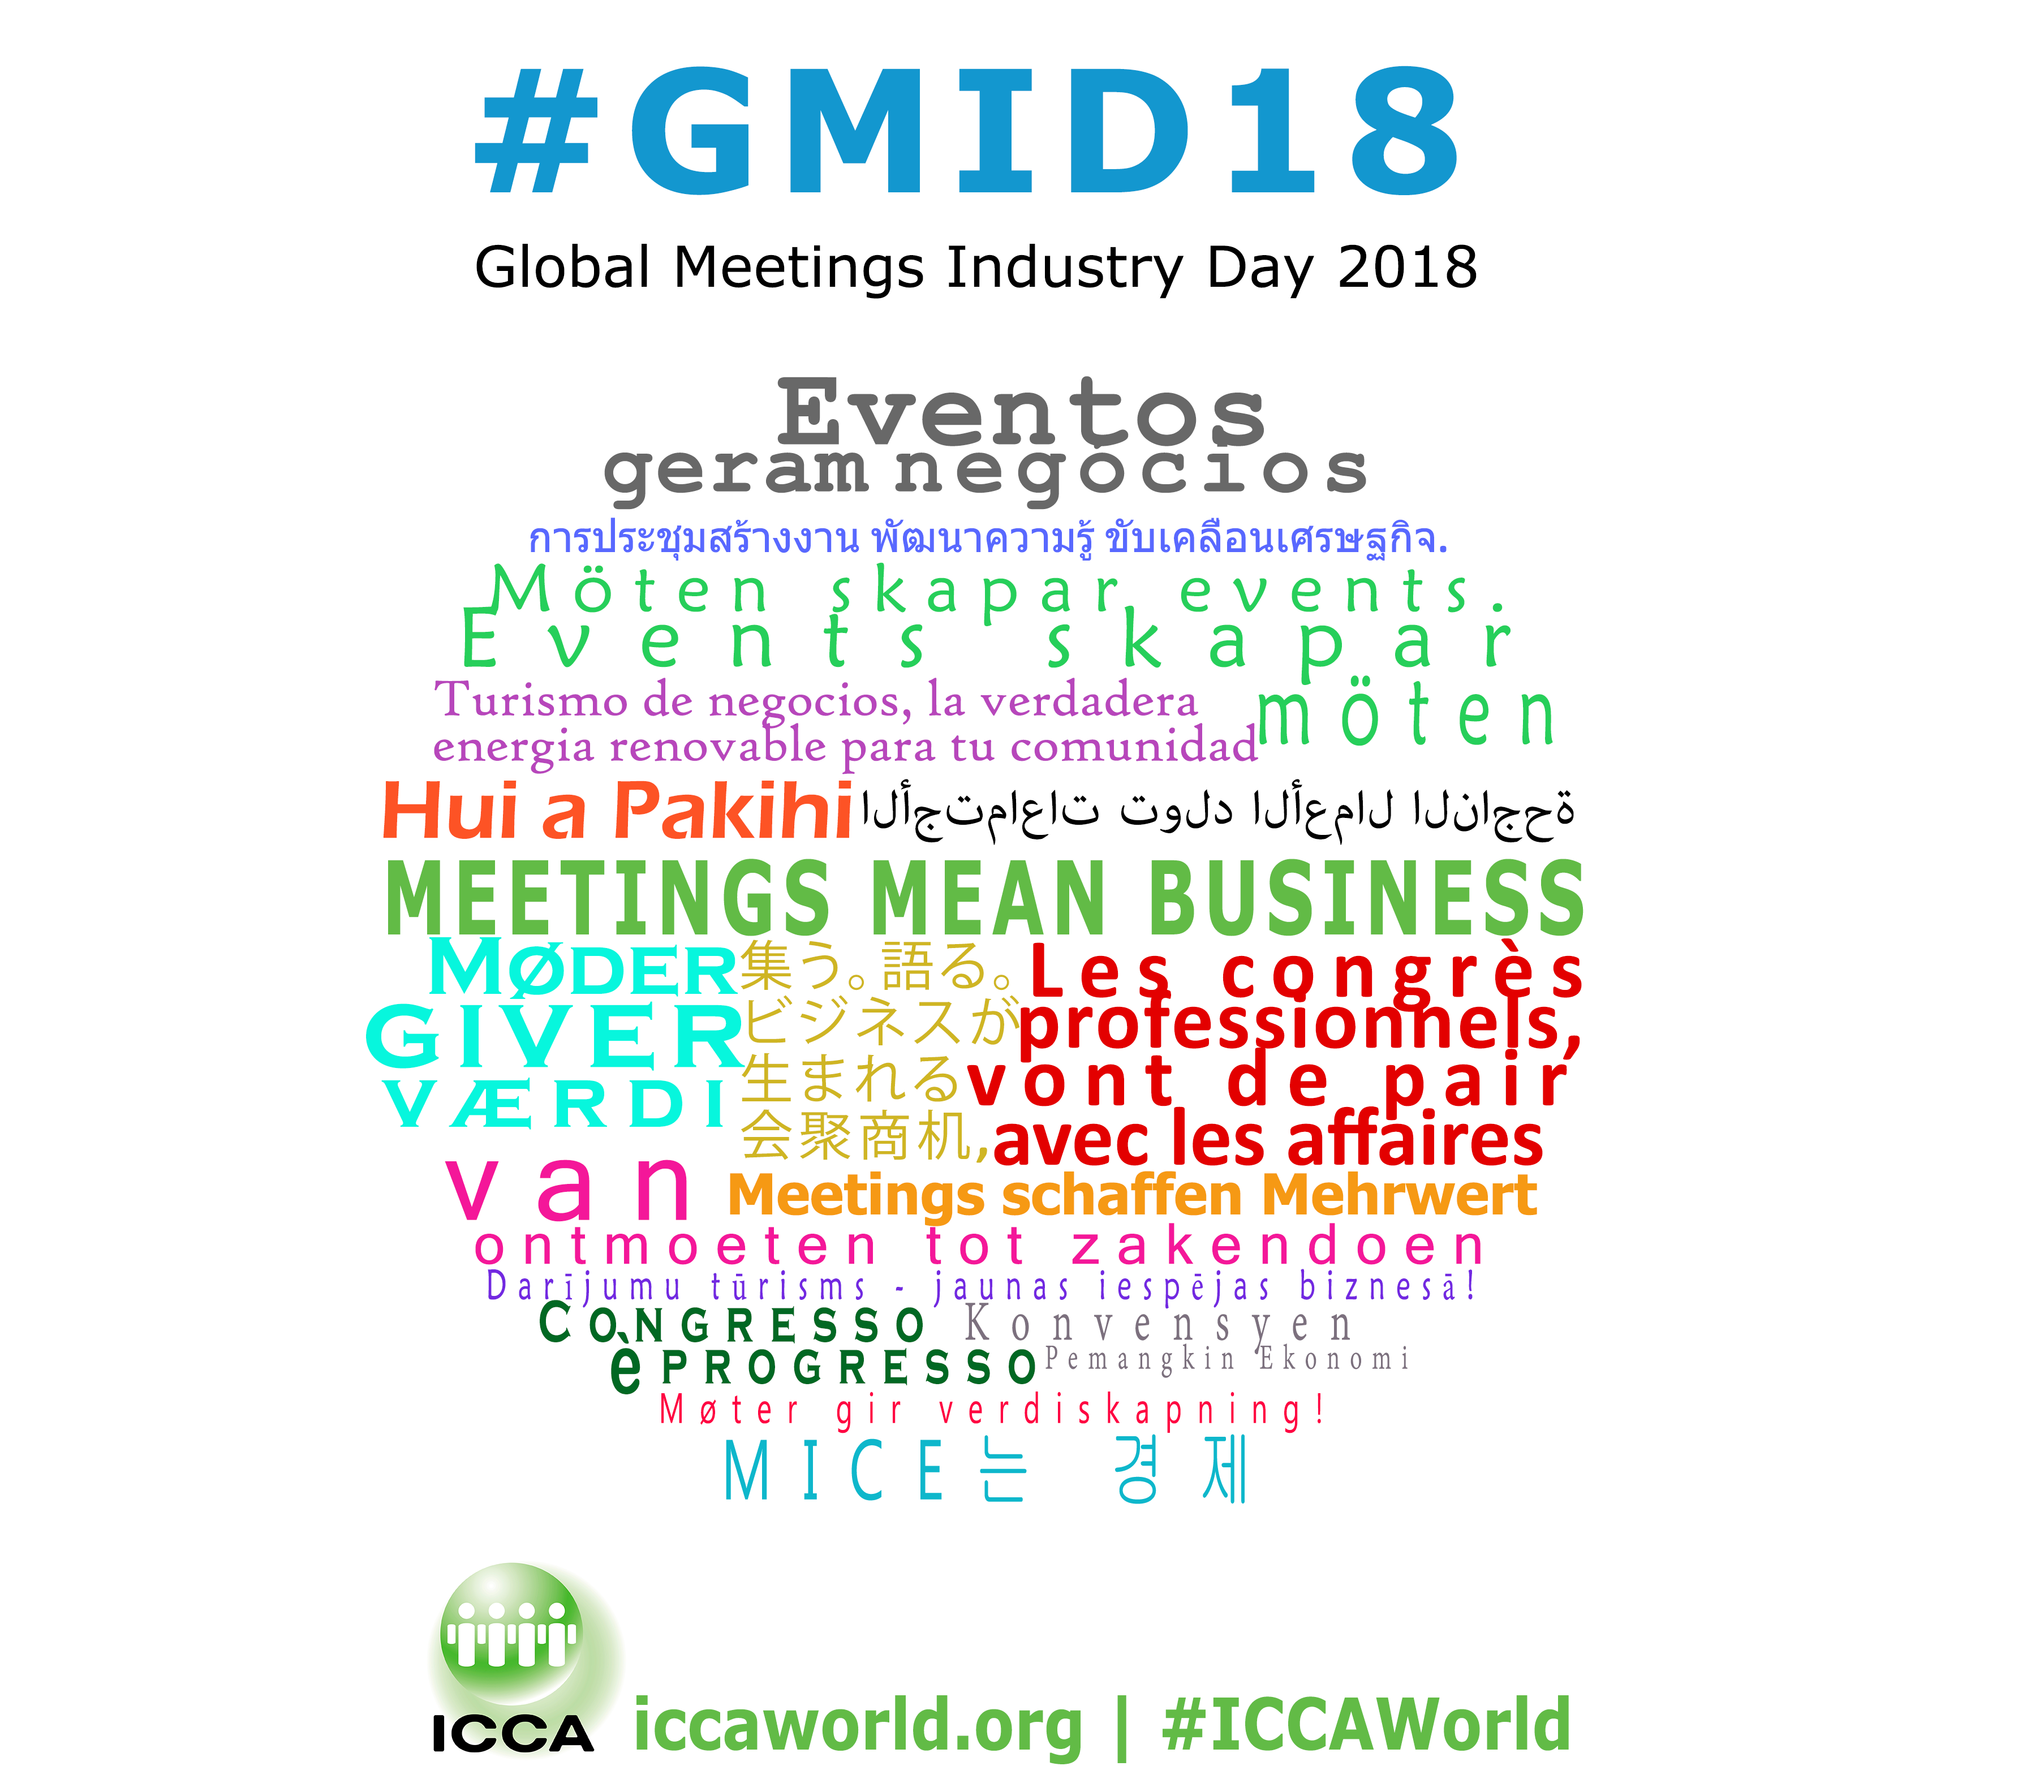 'Meetings Mean Business' in many different languages - Global Meetings Industry Day 2018